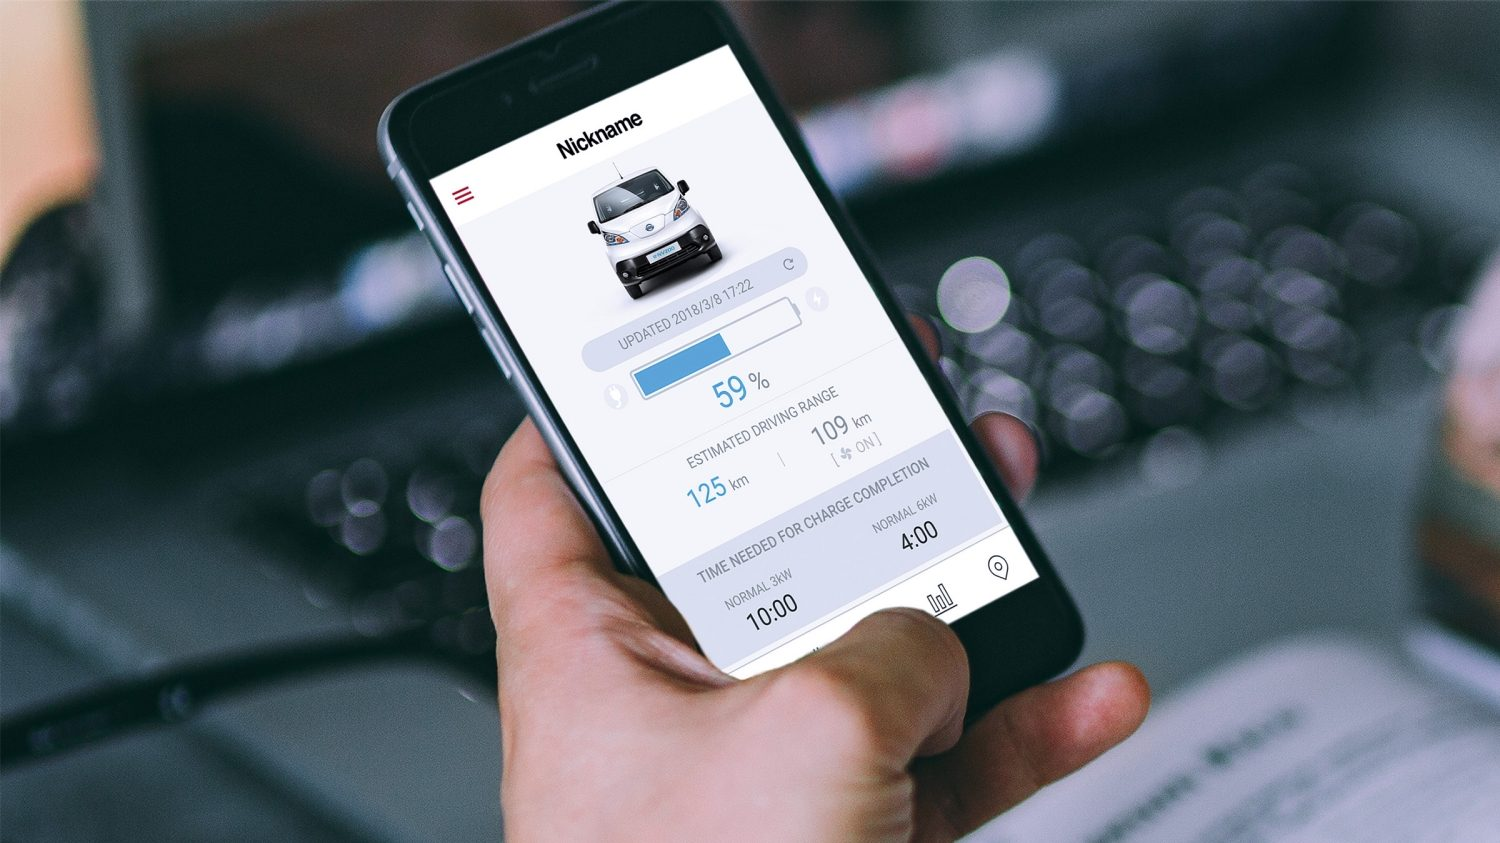 New Nissan e-NV200 Nissanconnect ev app screen on smartphone